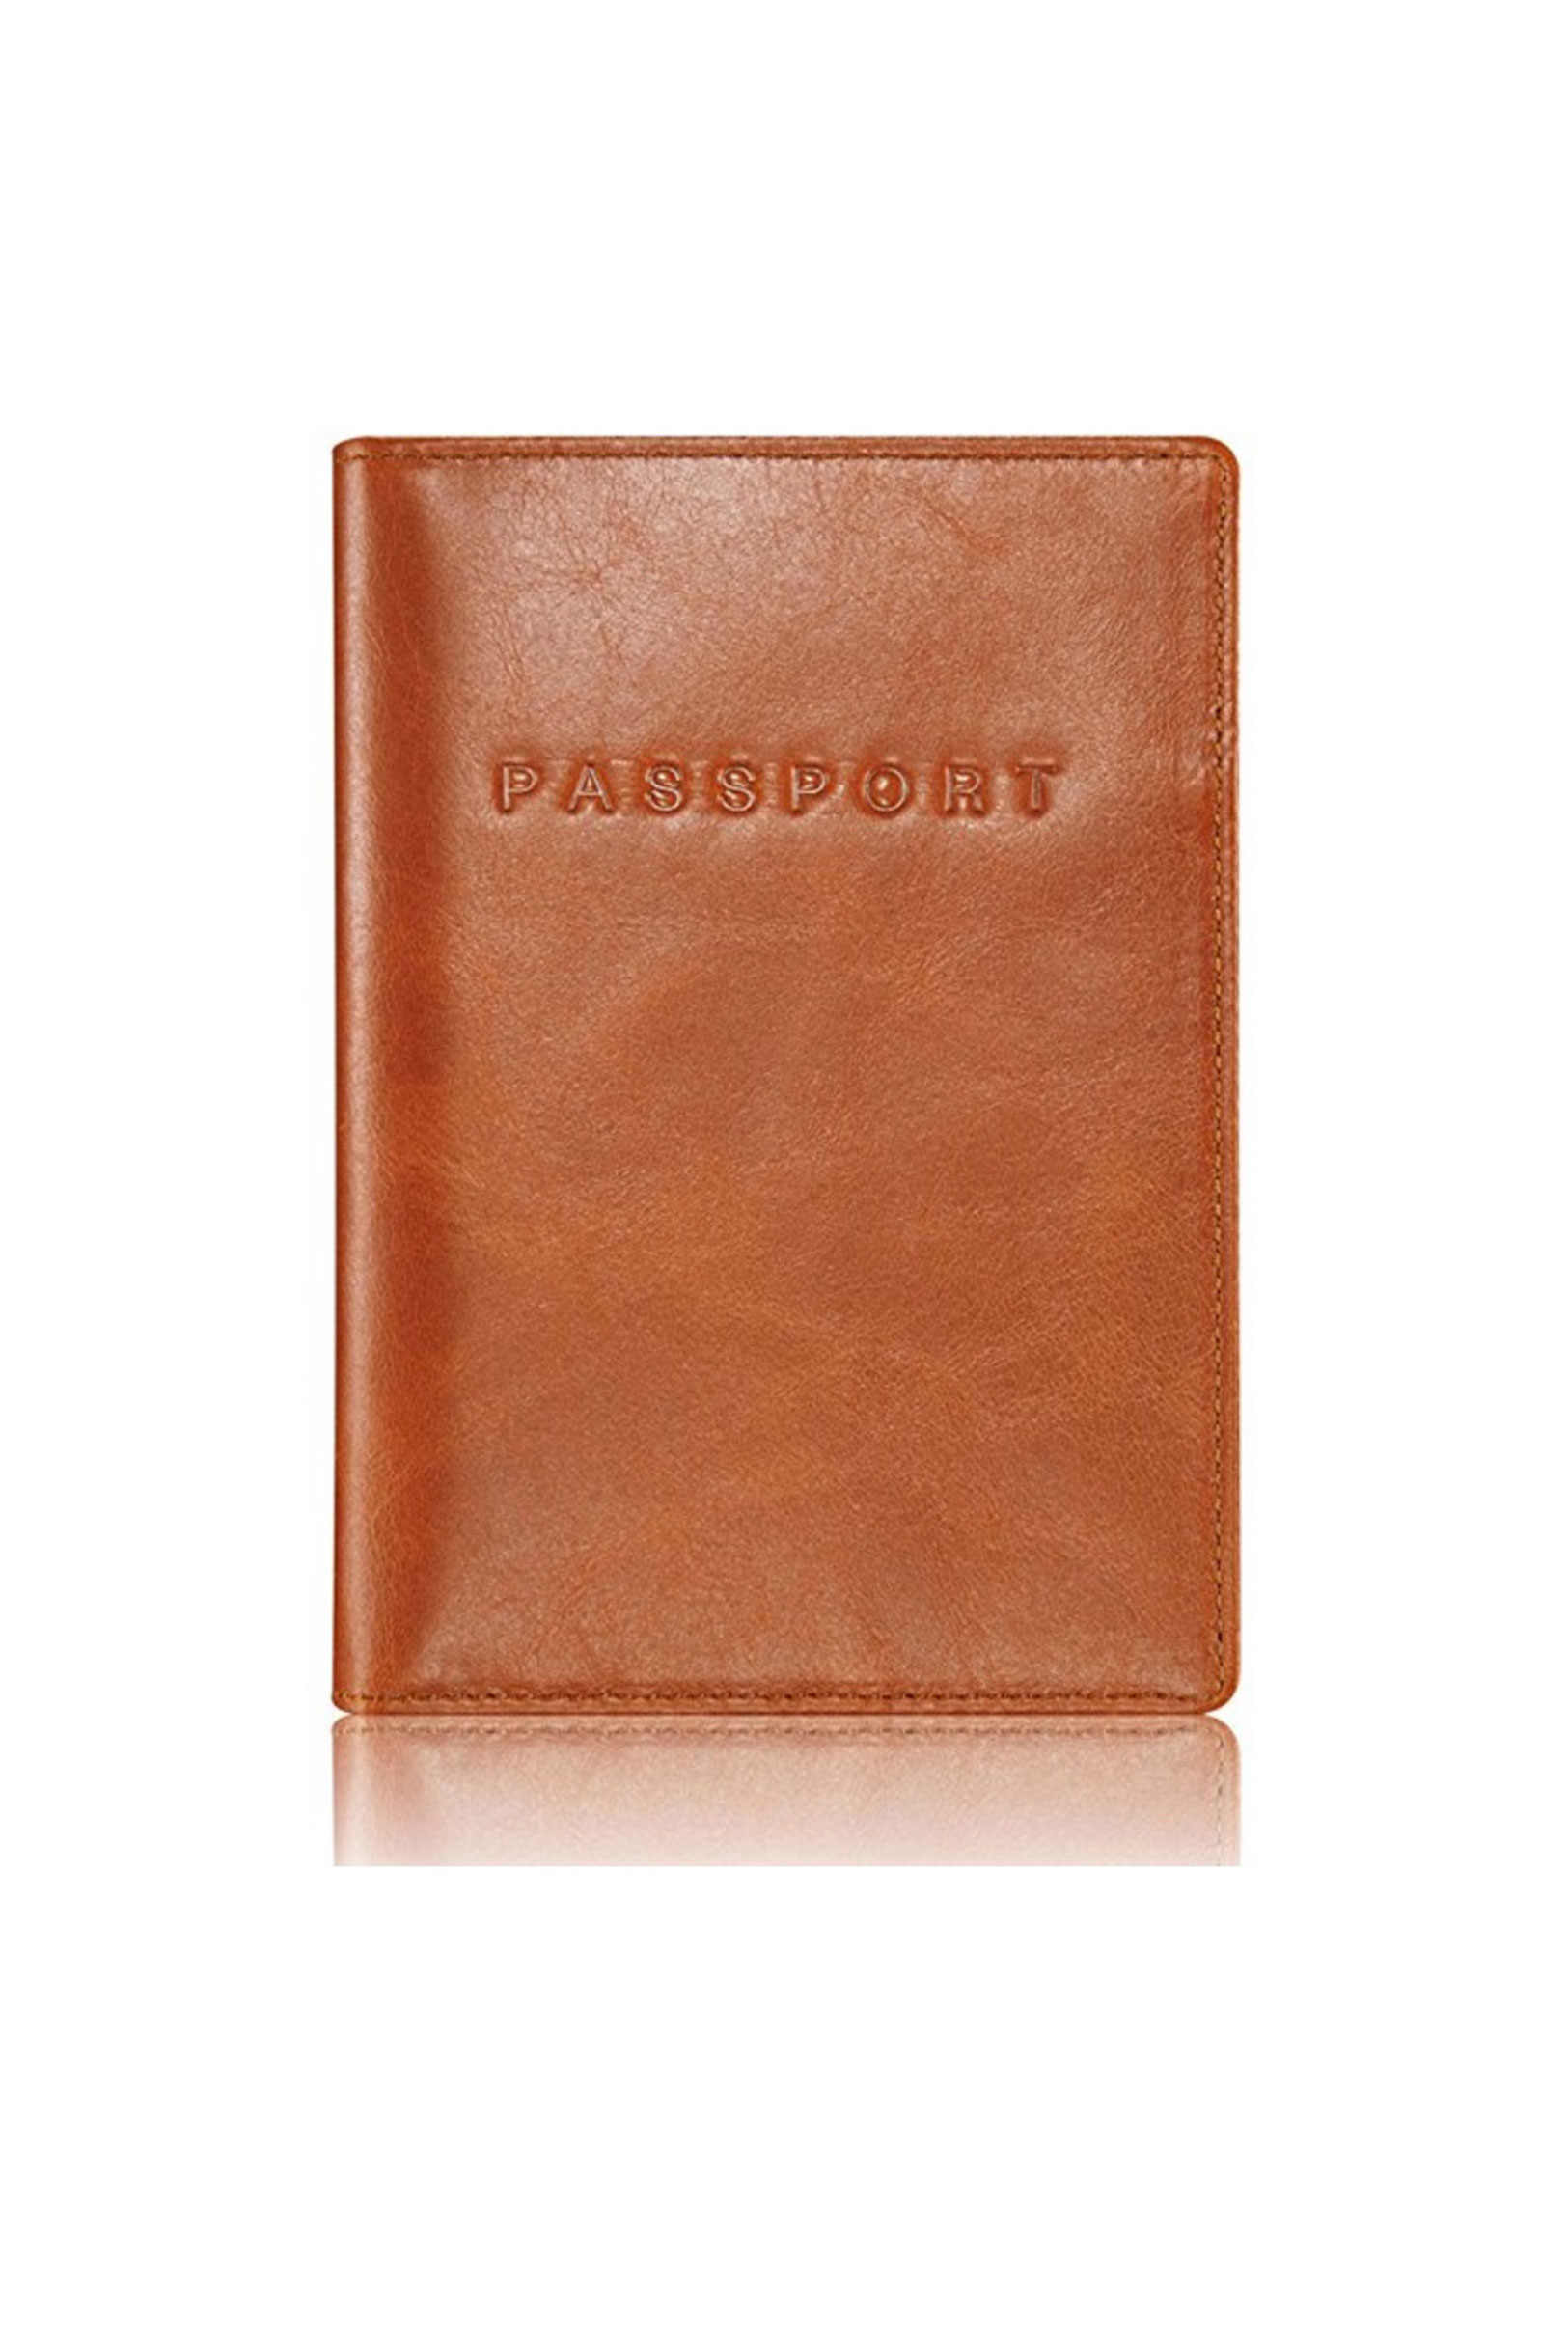 Leather-Passport-Holder.jpg